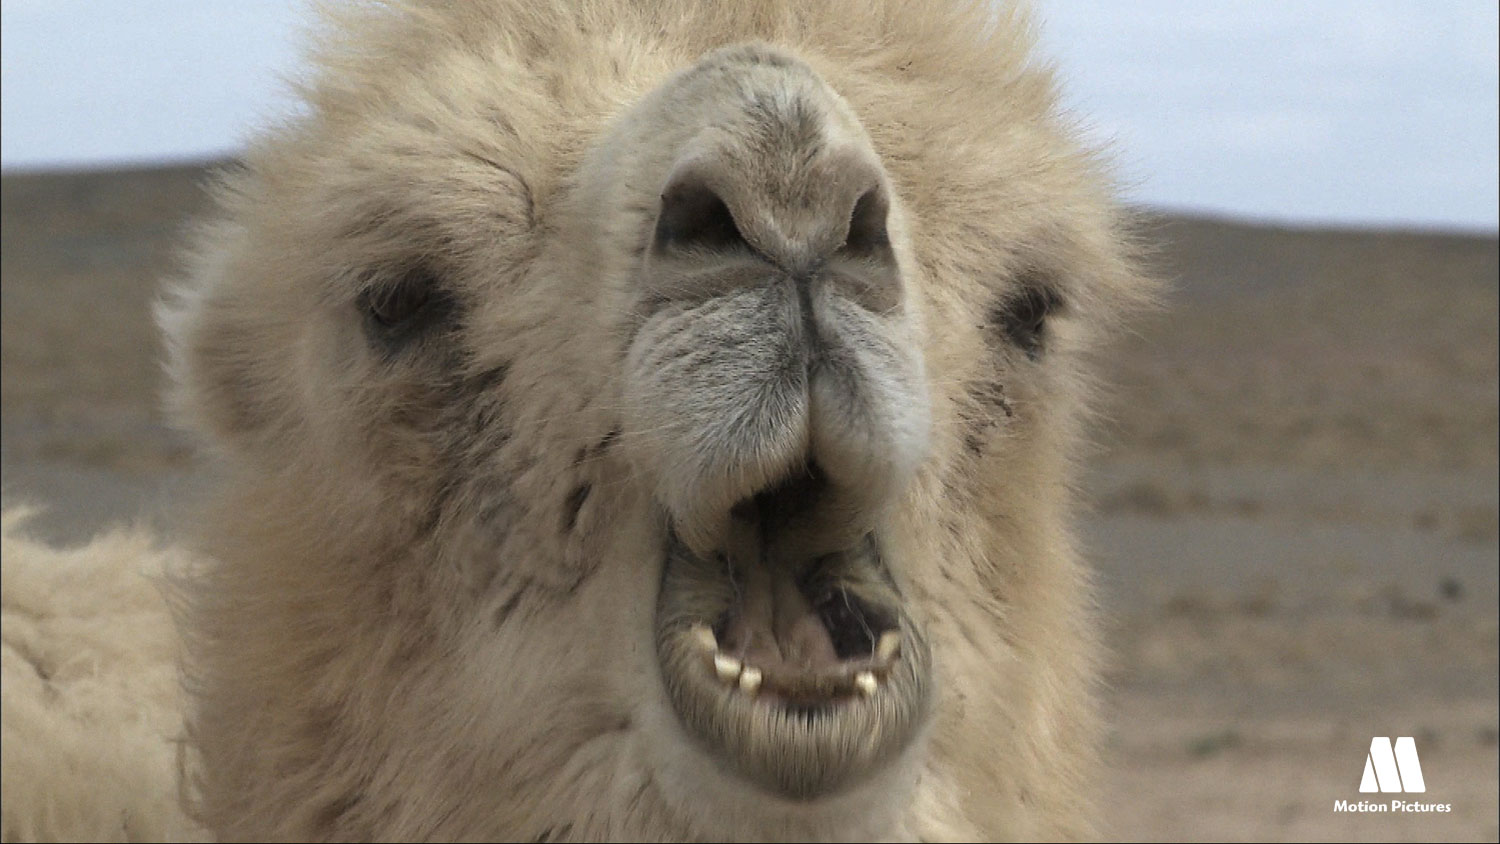 camello blanco cabeza, documentary changantime, the white camel, documetal changantime, el camello blanco